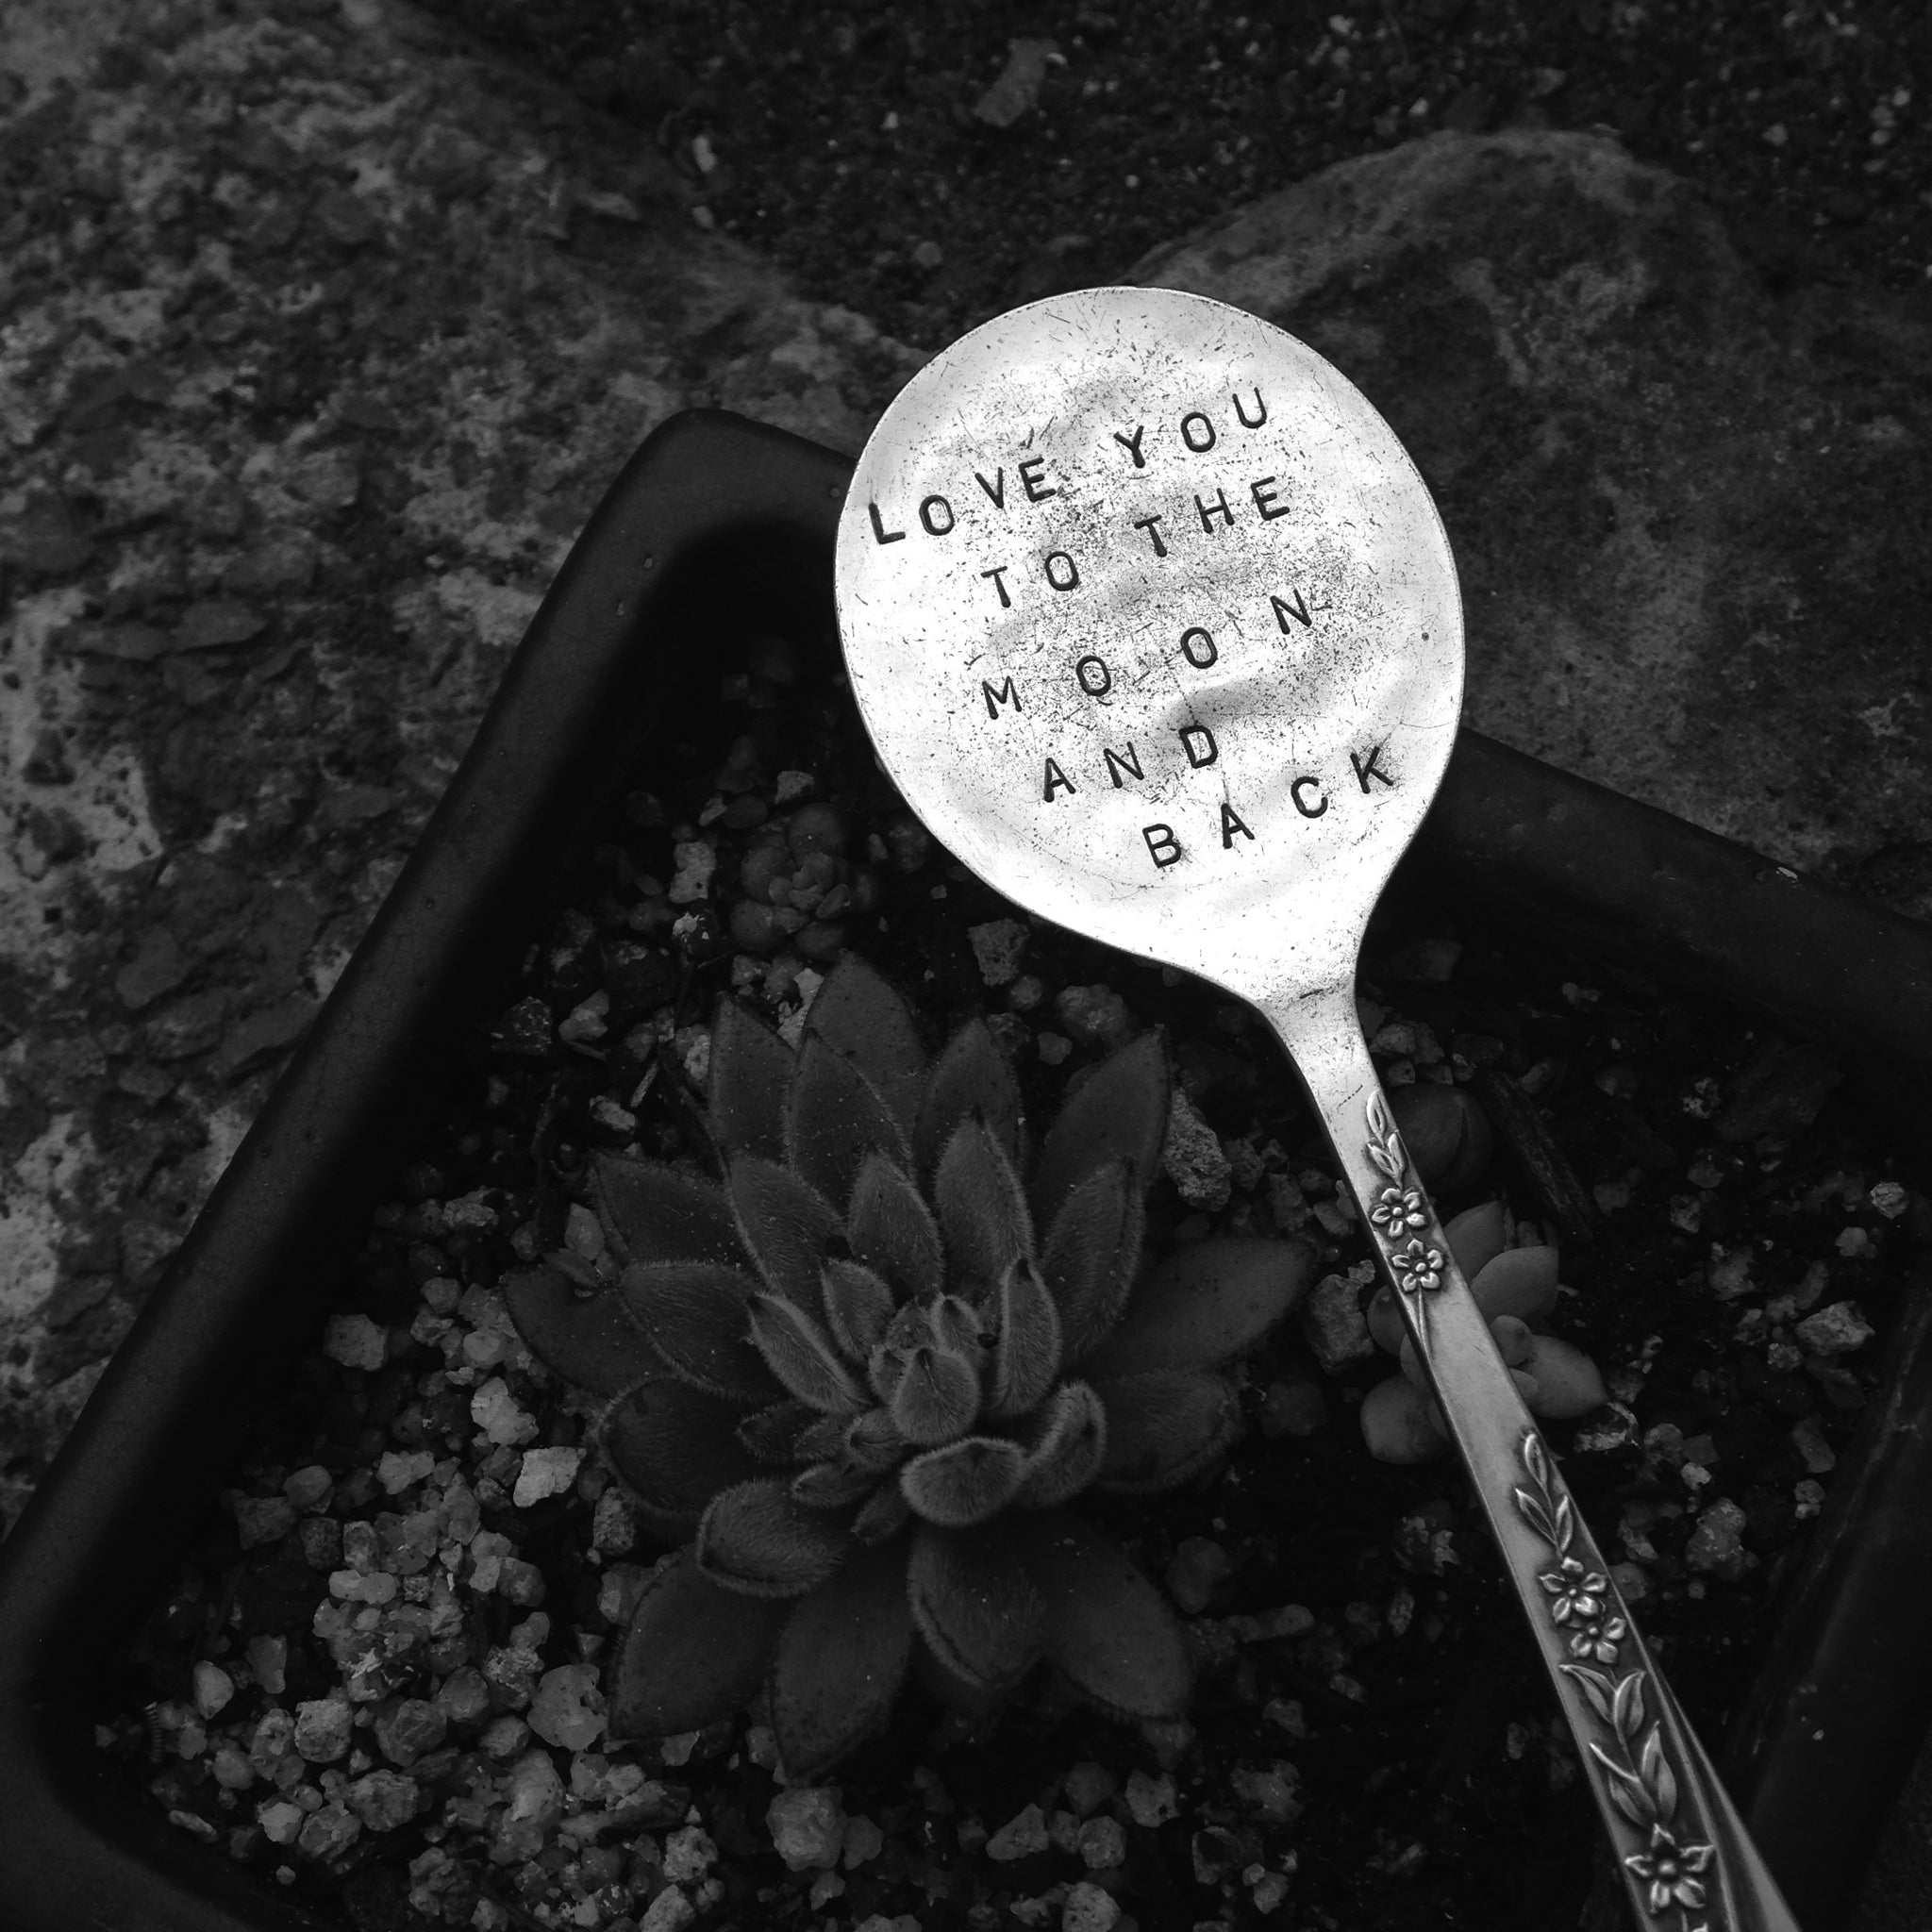 love you to the moon and back - letter-stamped vintage spoon